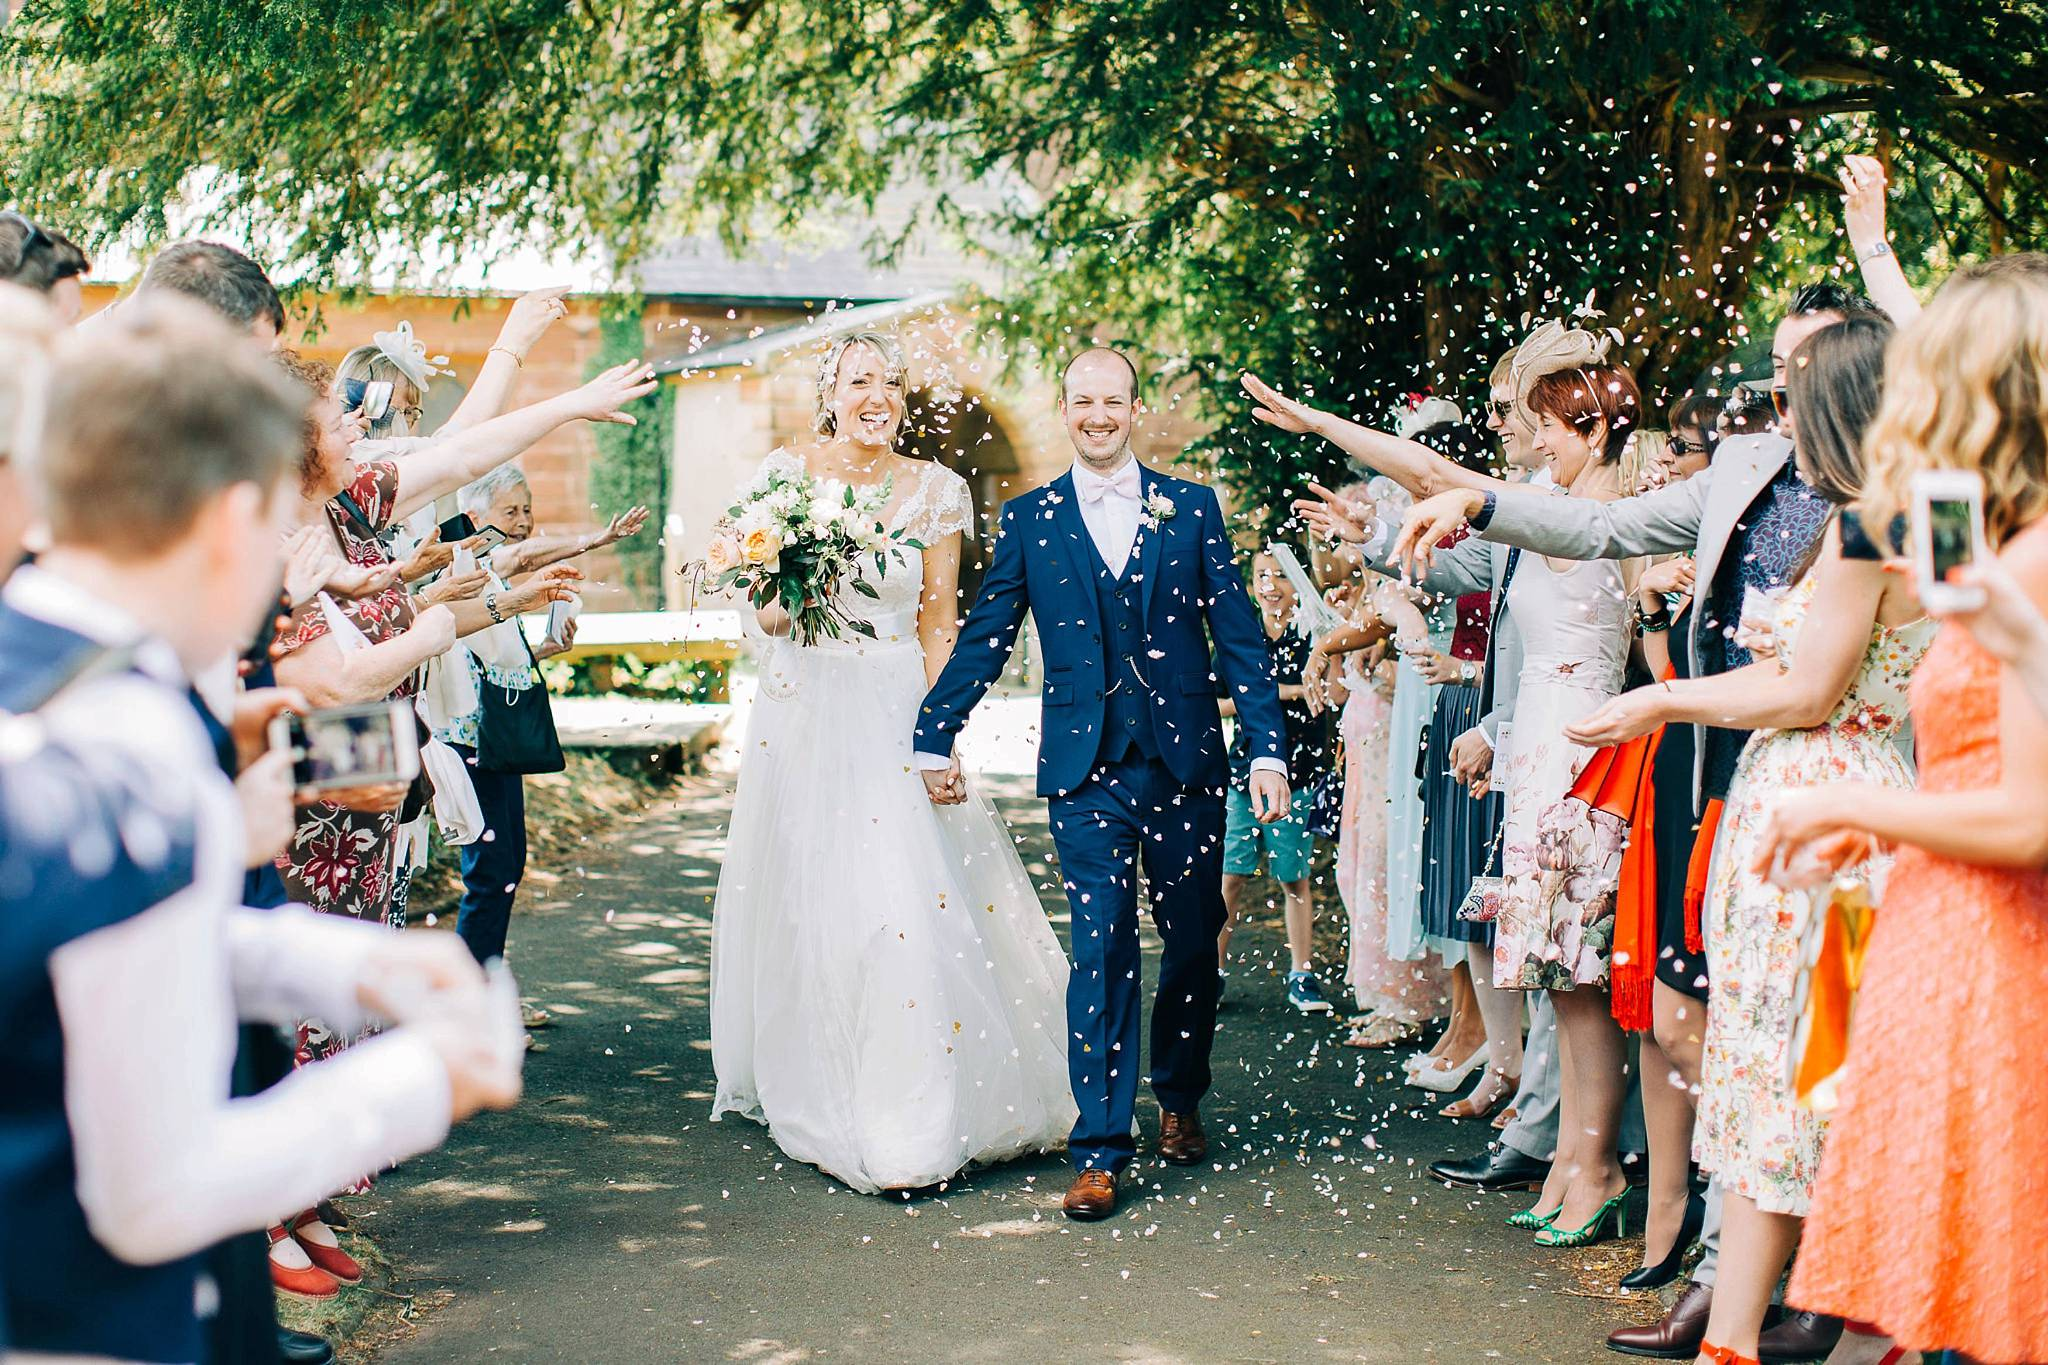 Natural wedding photography Manchester - Clare Robinson Photography_0055.jpg